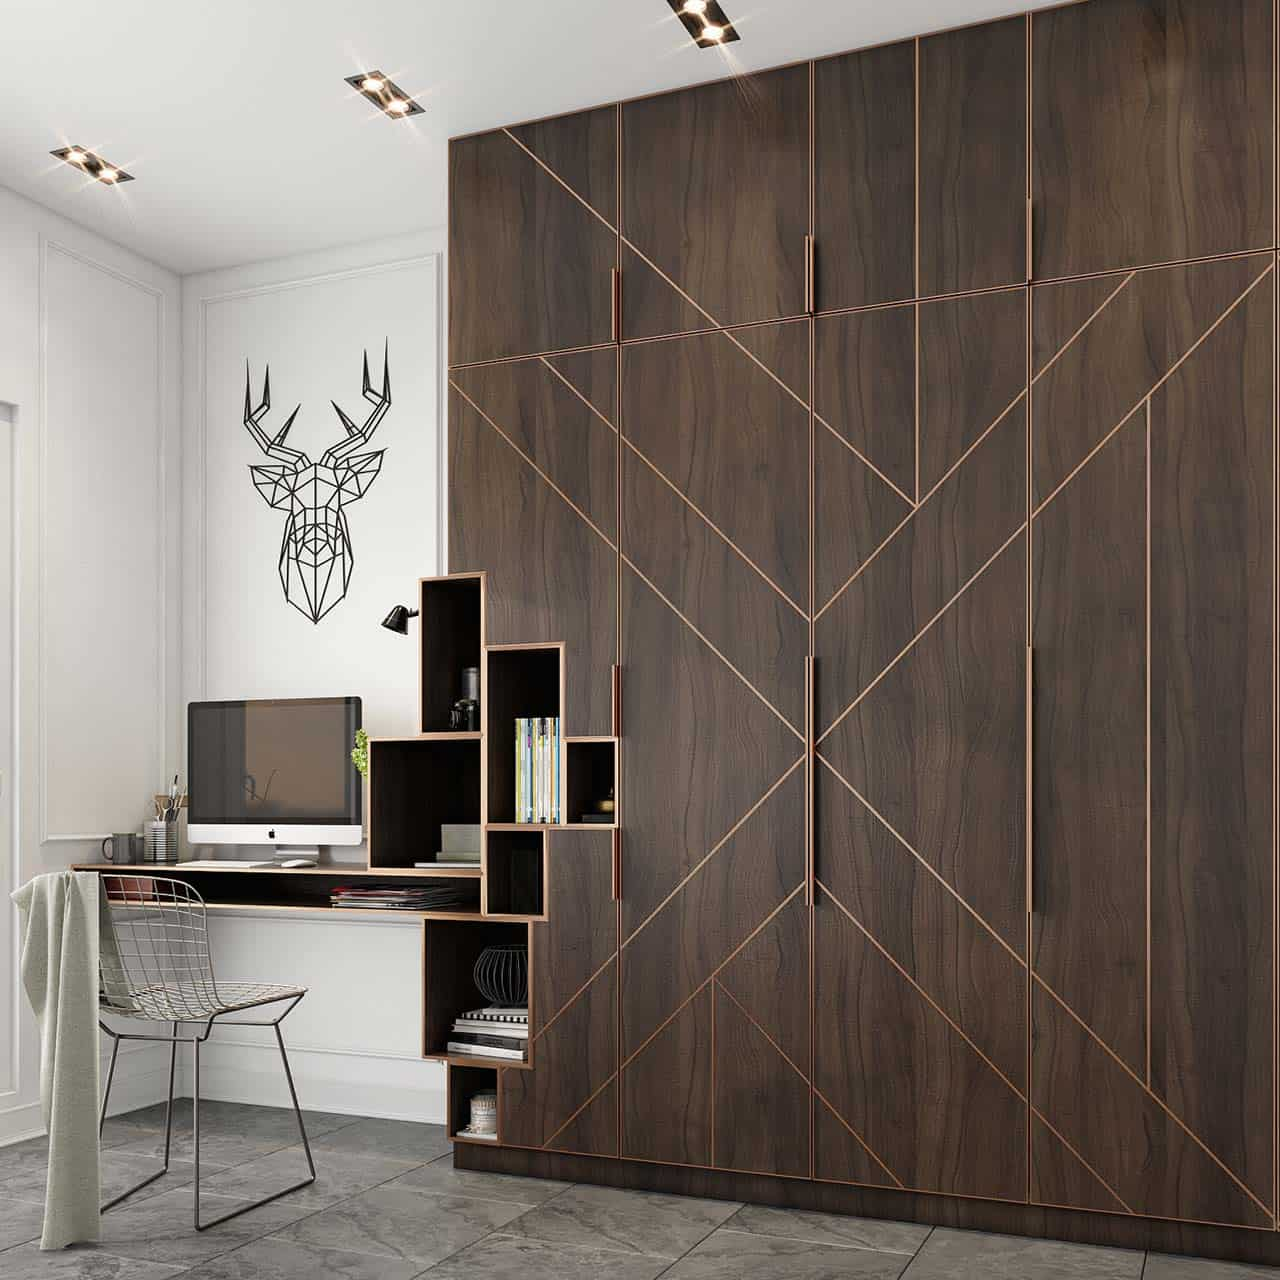 Convert Spare Bedroom into a Study Room